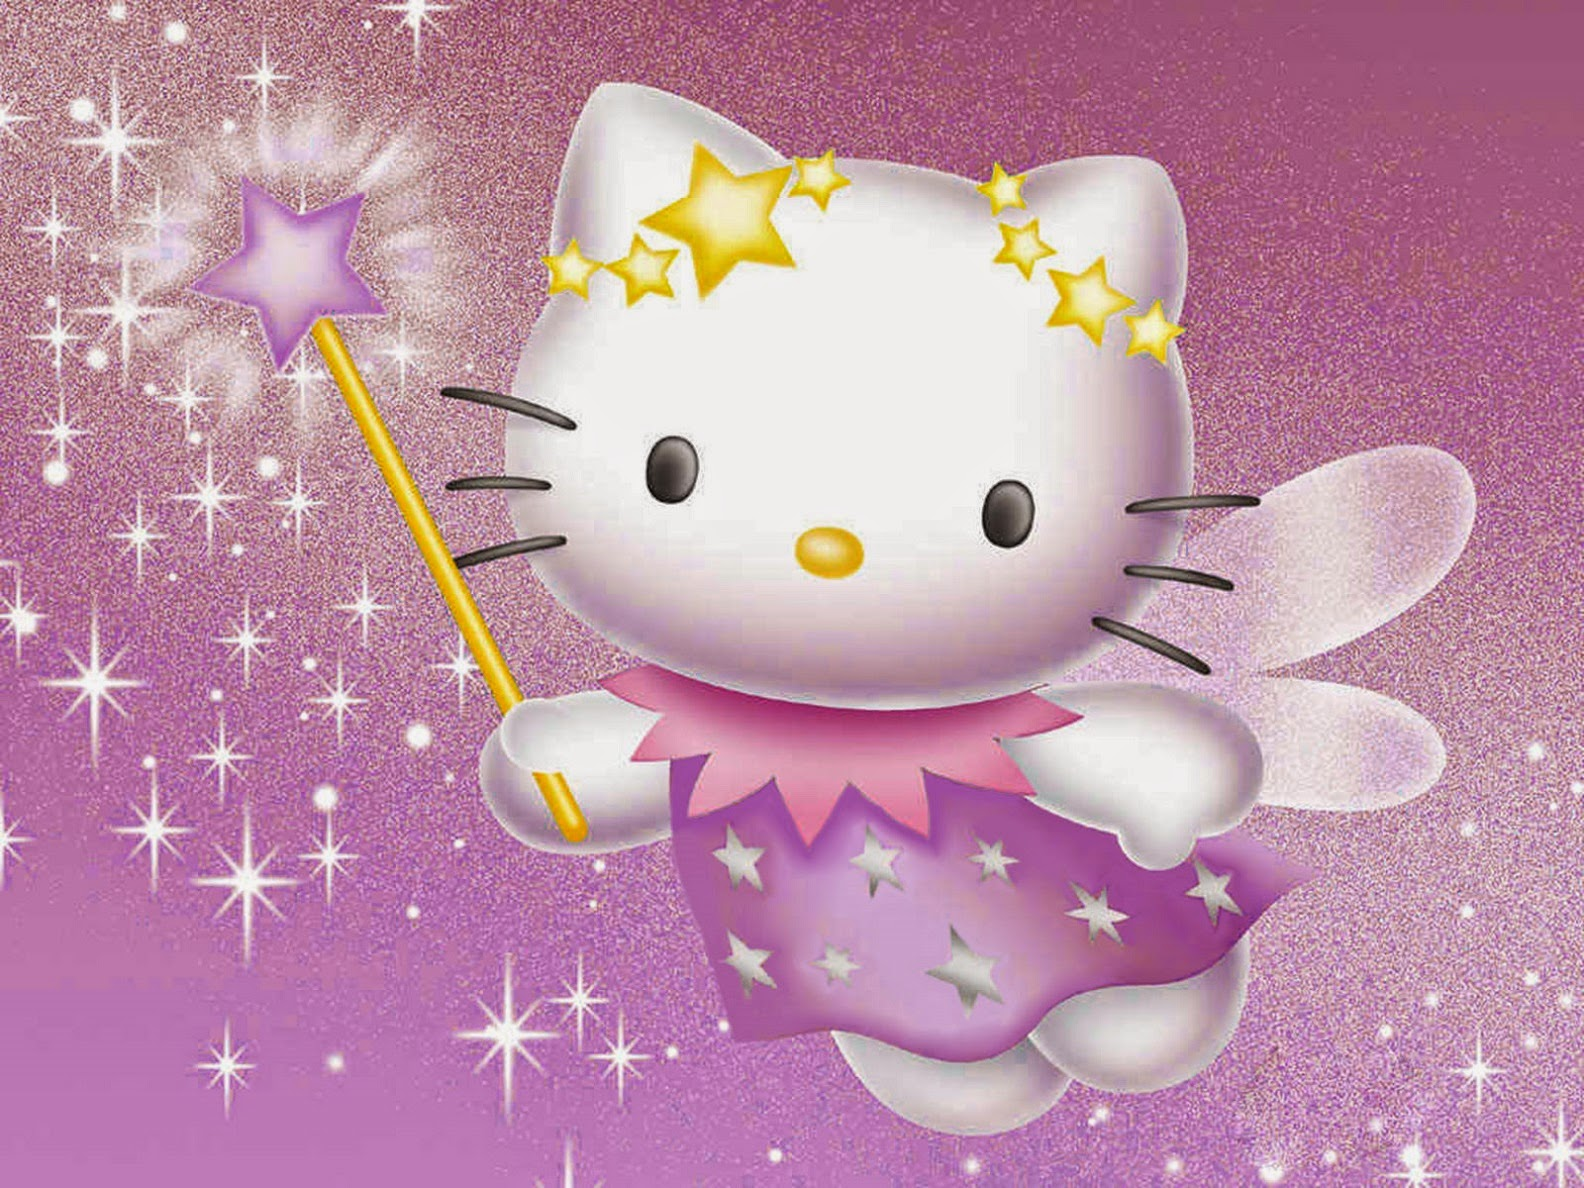 House of wallpapers free download high definition - Wallpaper hello kitty full hd ...